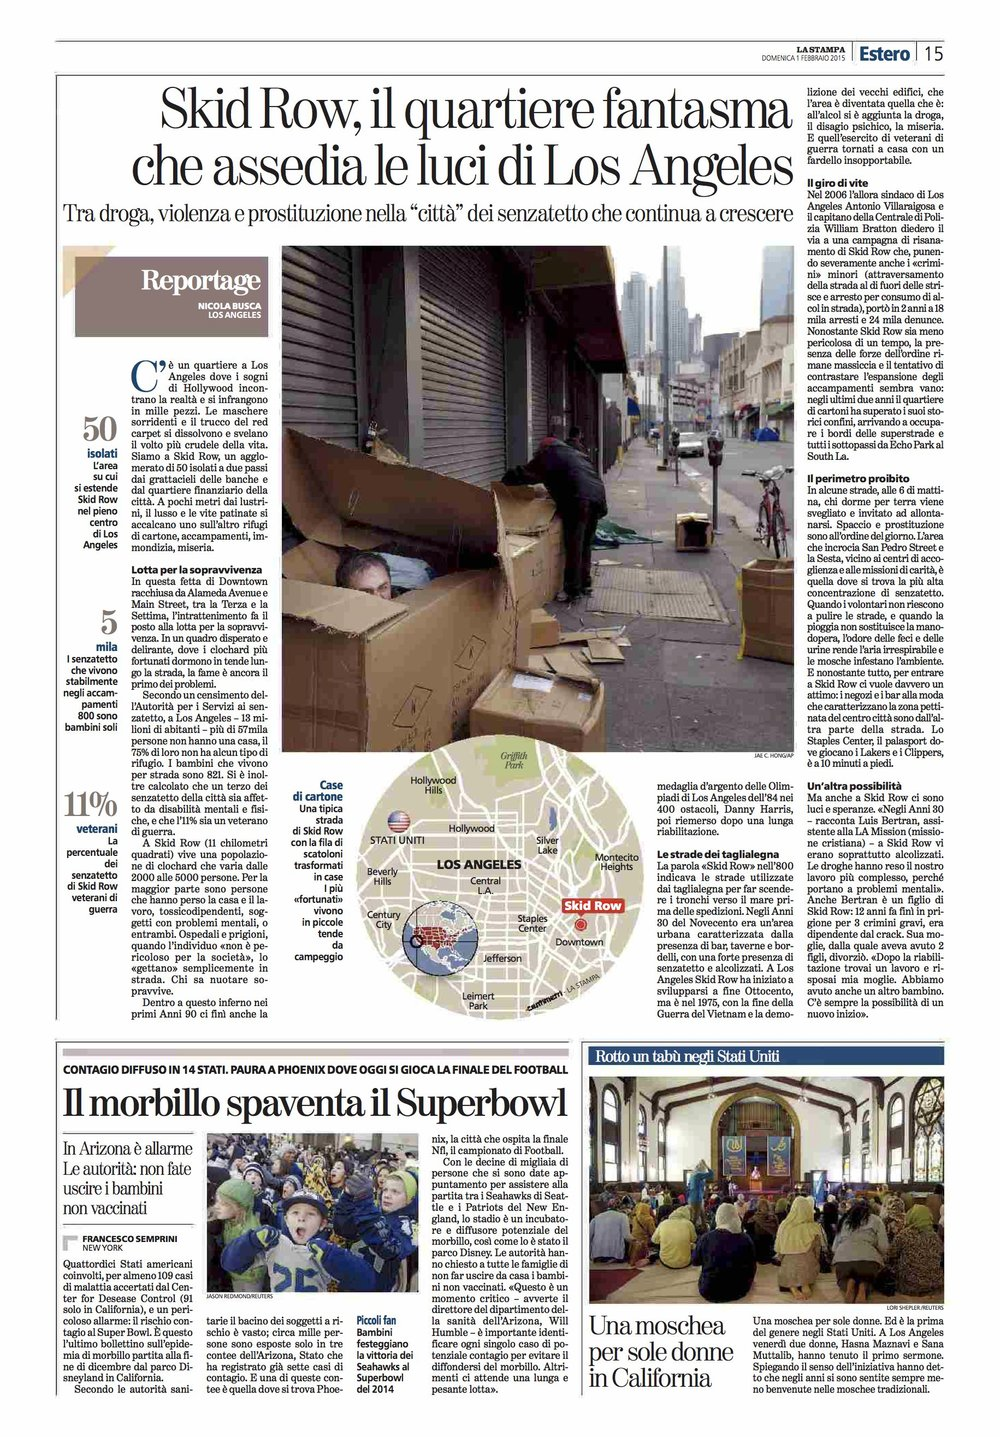 La Stampa (ITA). Skid Row: the toughest side of Los Angeles.